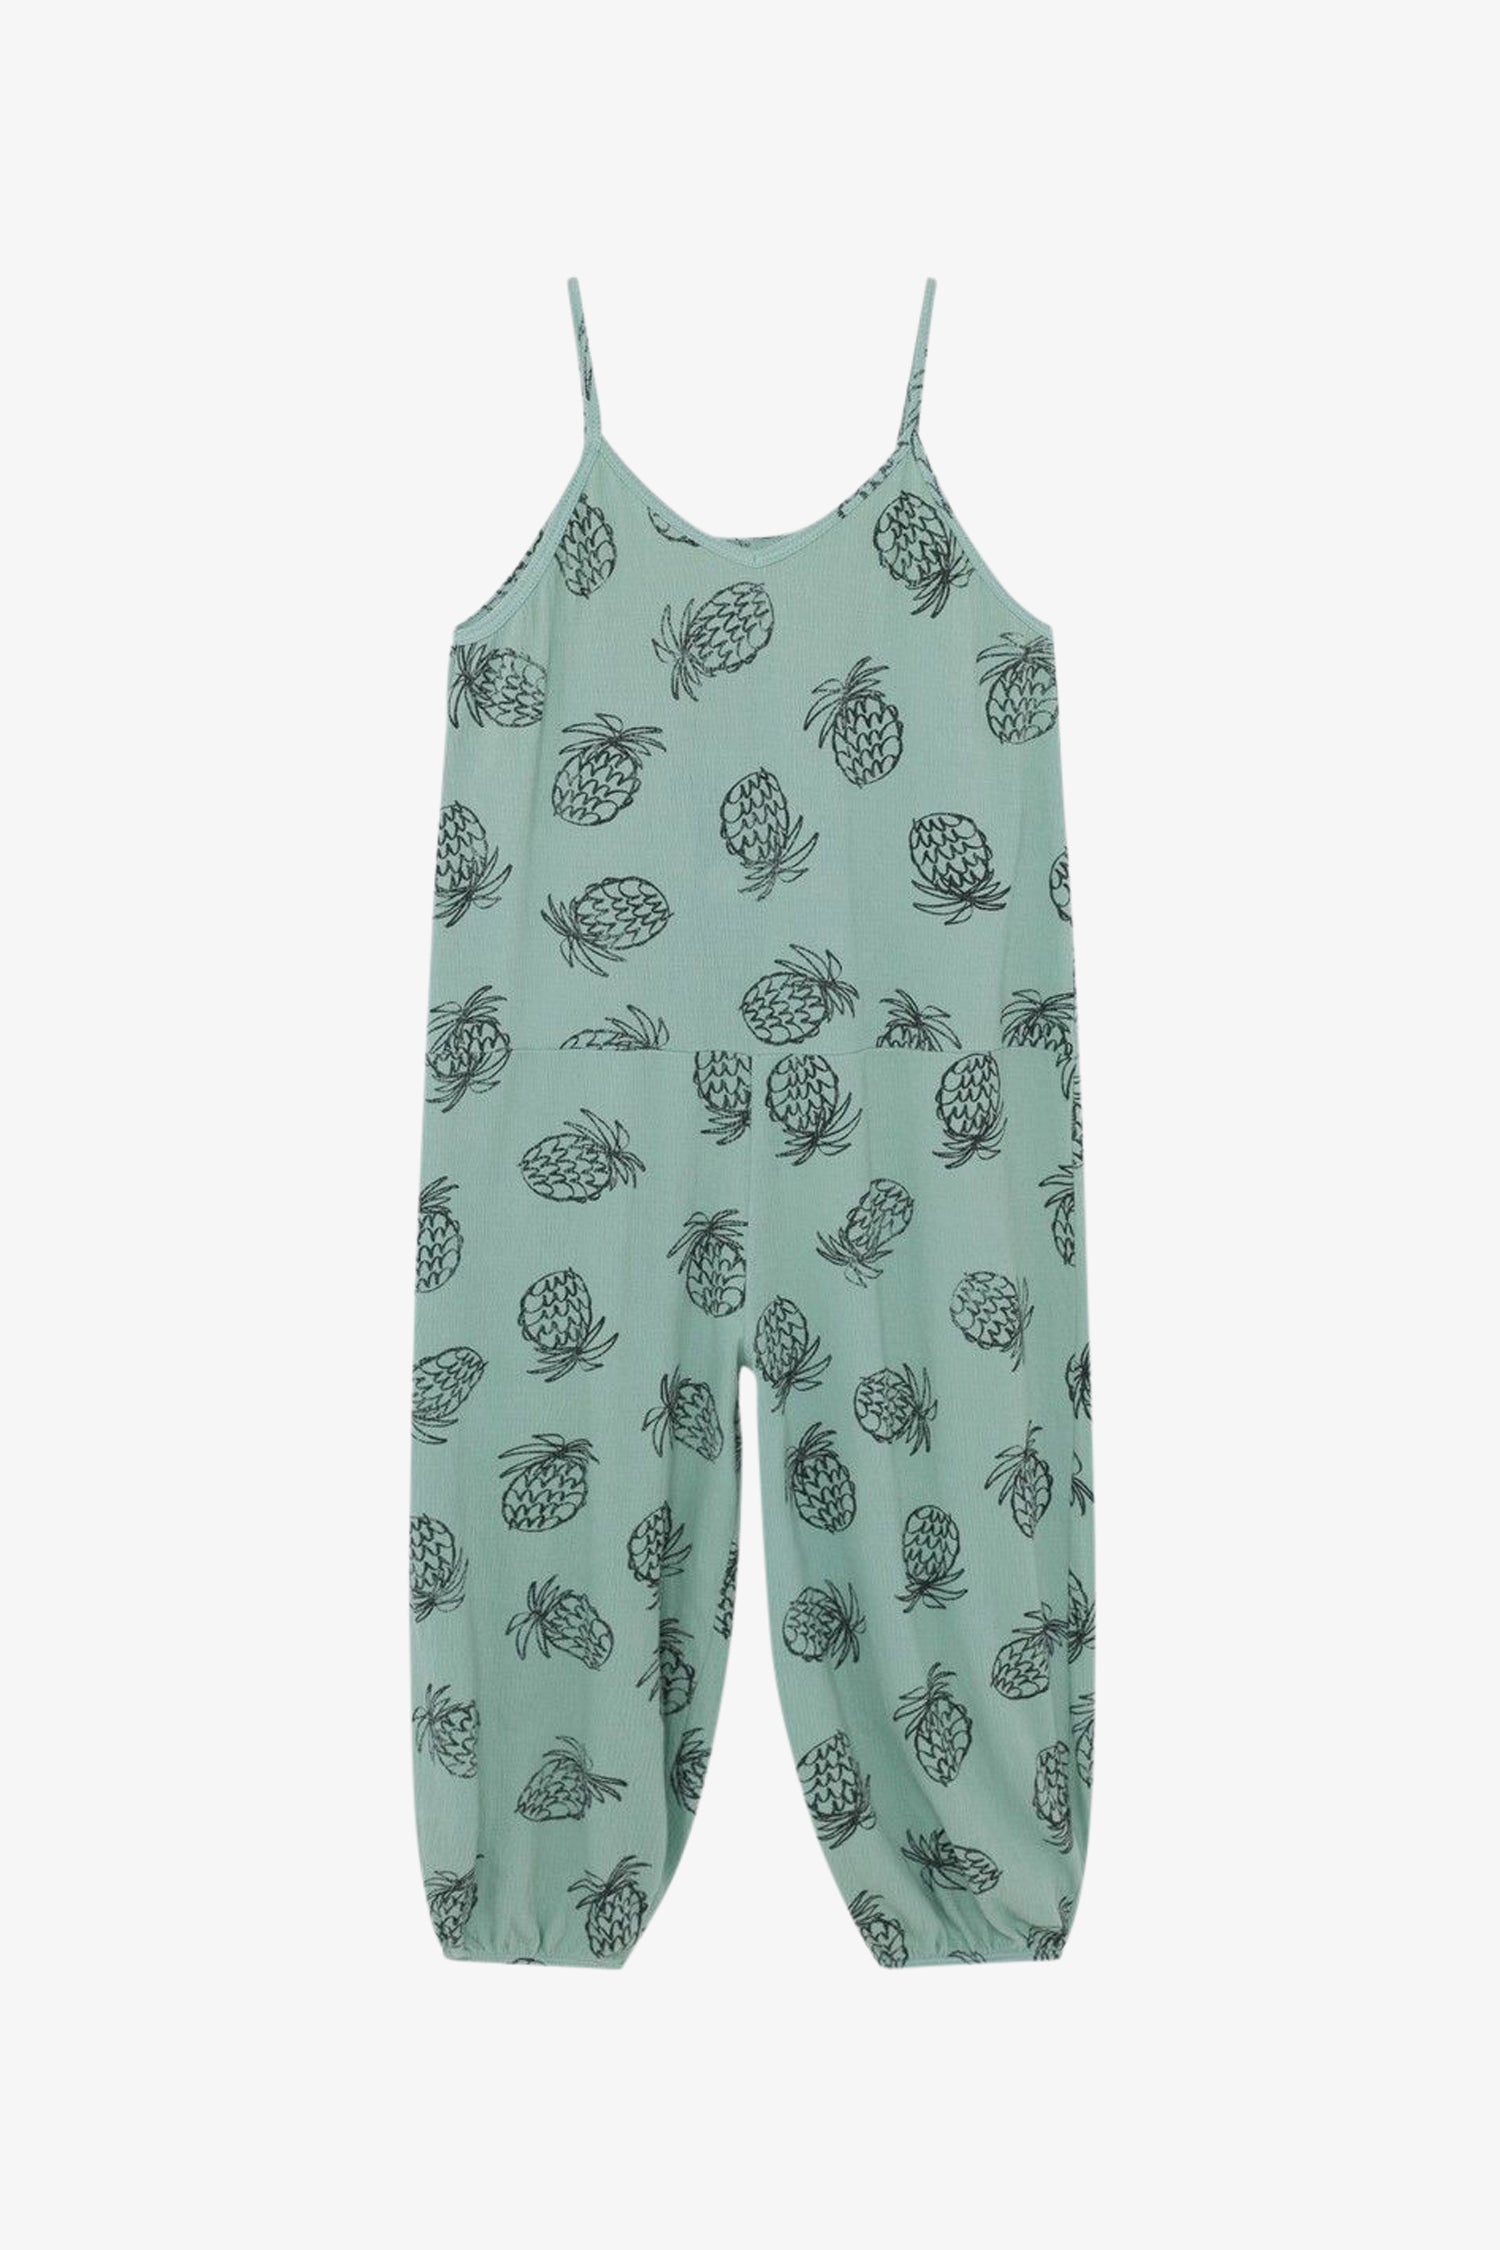 Selectshop FRAME - BOBO CHOSES All Over Pineapple Jersey Overall Kids Dubai